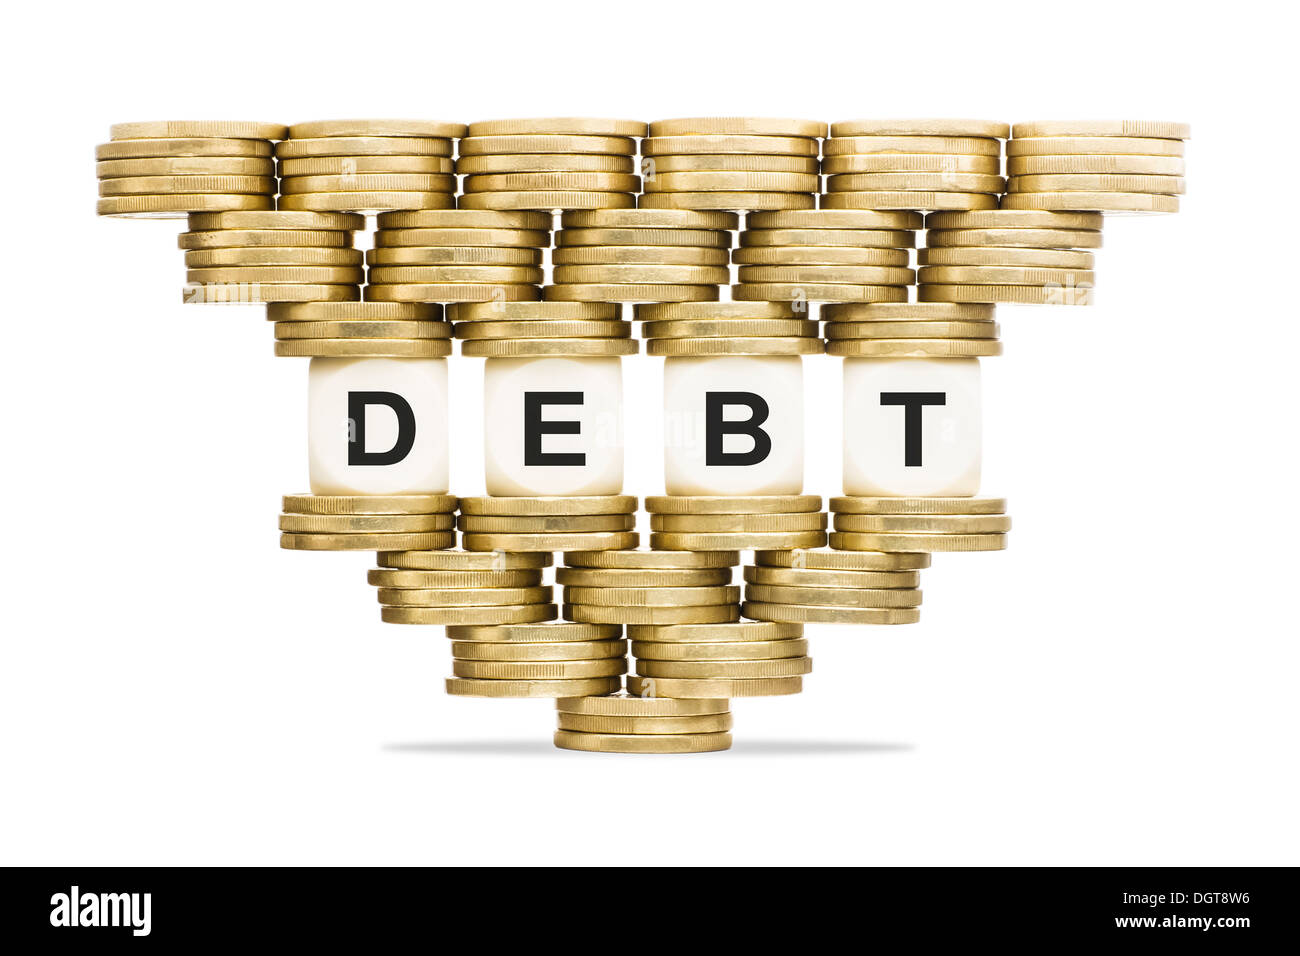 Debt Management Word DEBT on Unstable Stack of Gold Coins - Stock Image